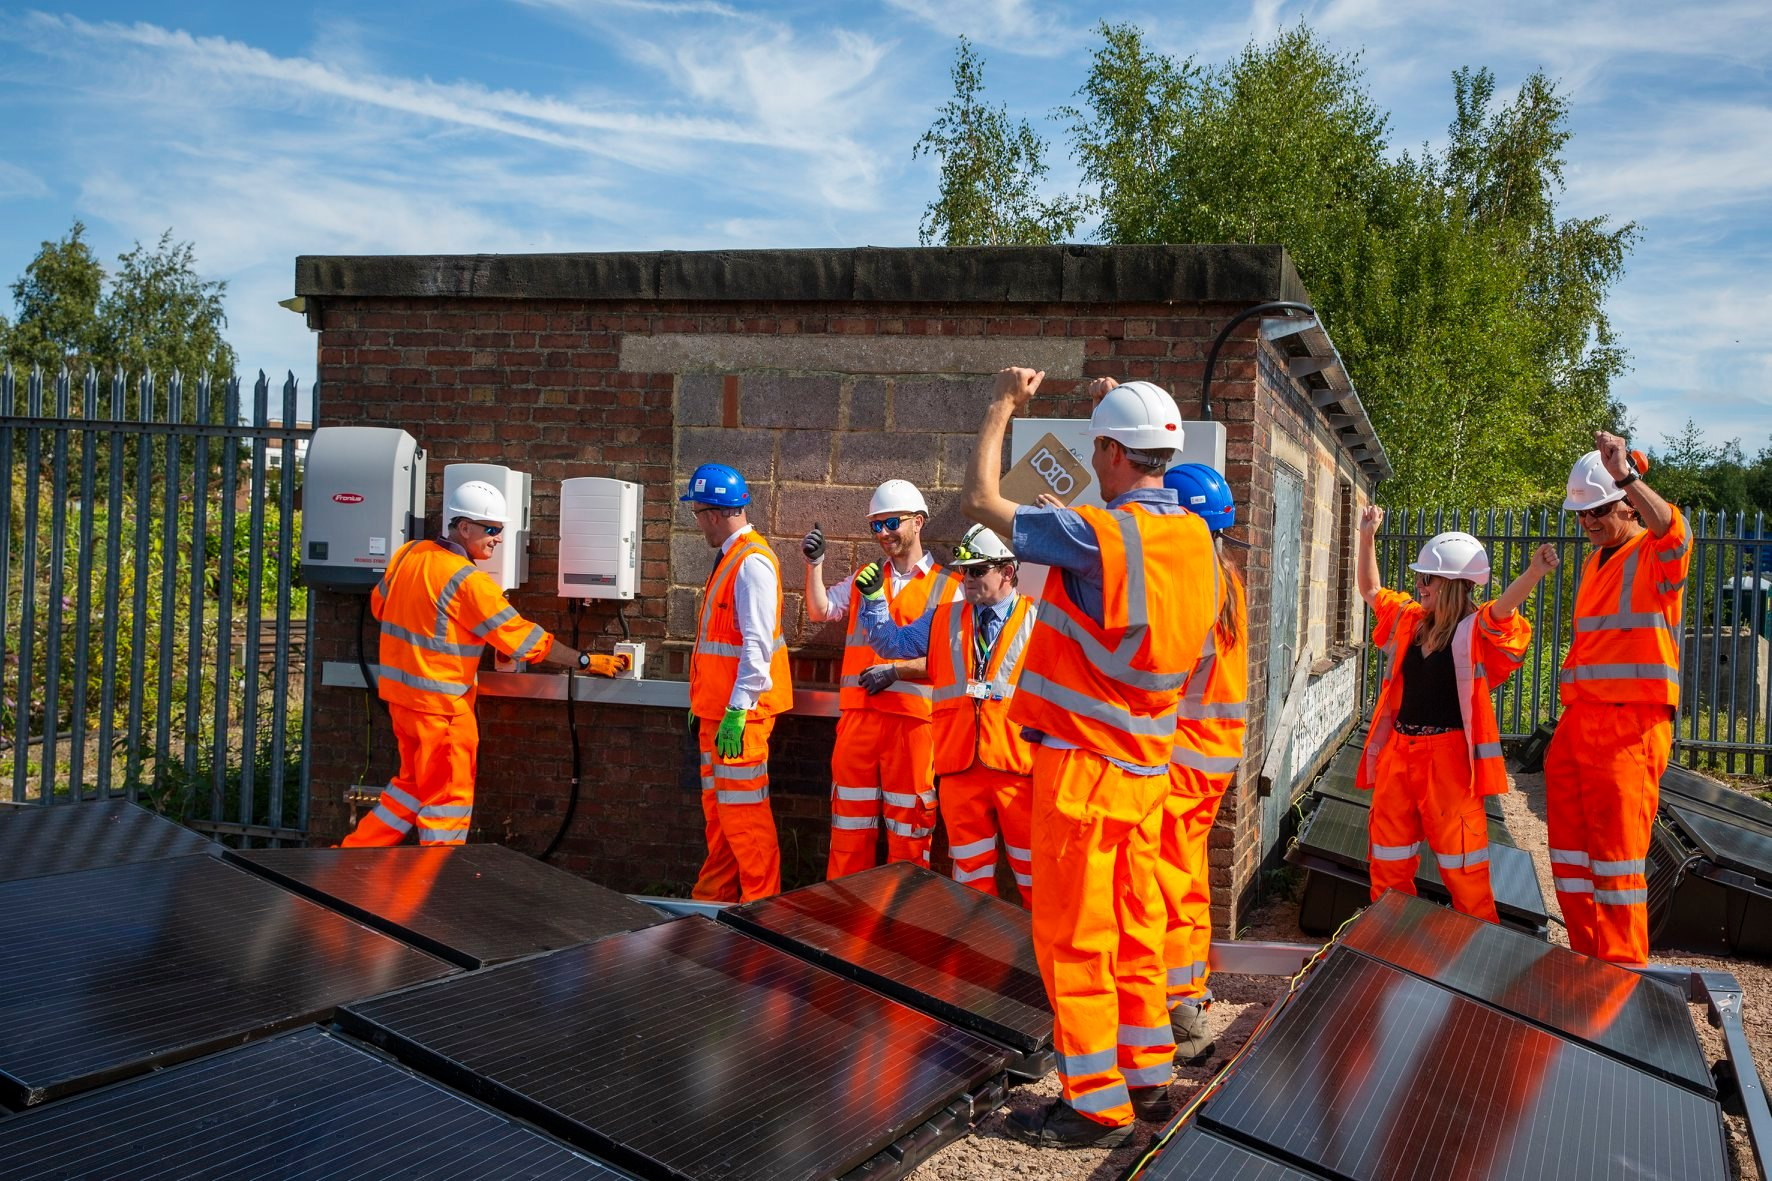 Basingstoke companies in world first as solar power is connected to railway lines